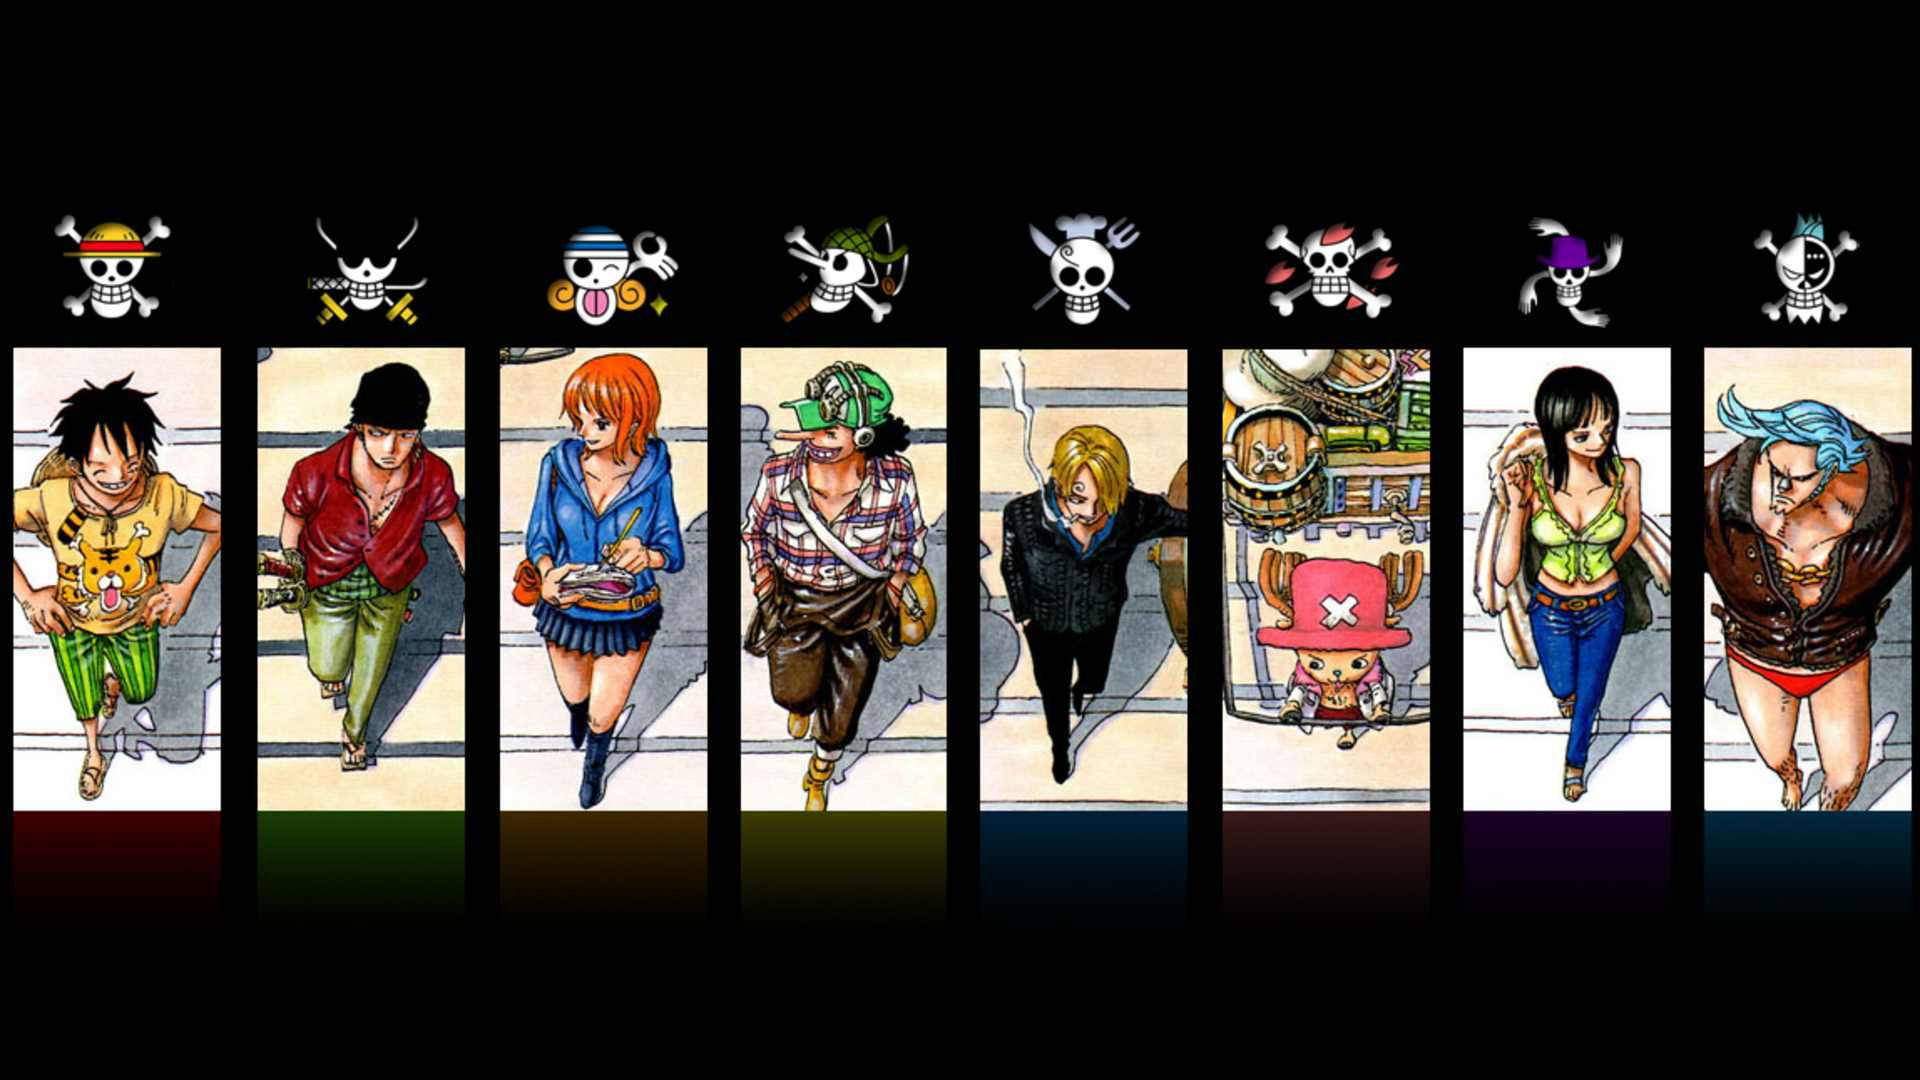 38 Sabo (One Piece) HD Wallpapers | Backgrounds - Wallpaper Abyss